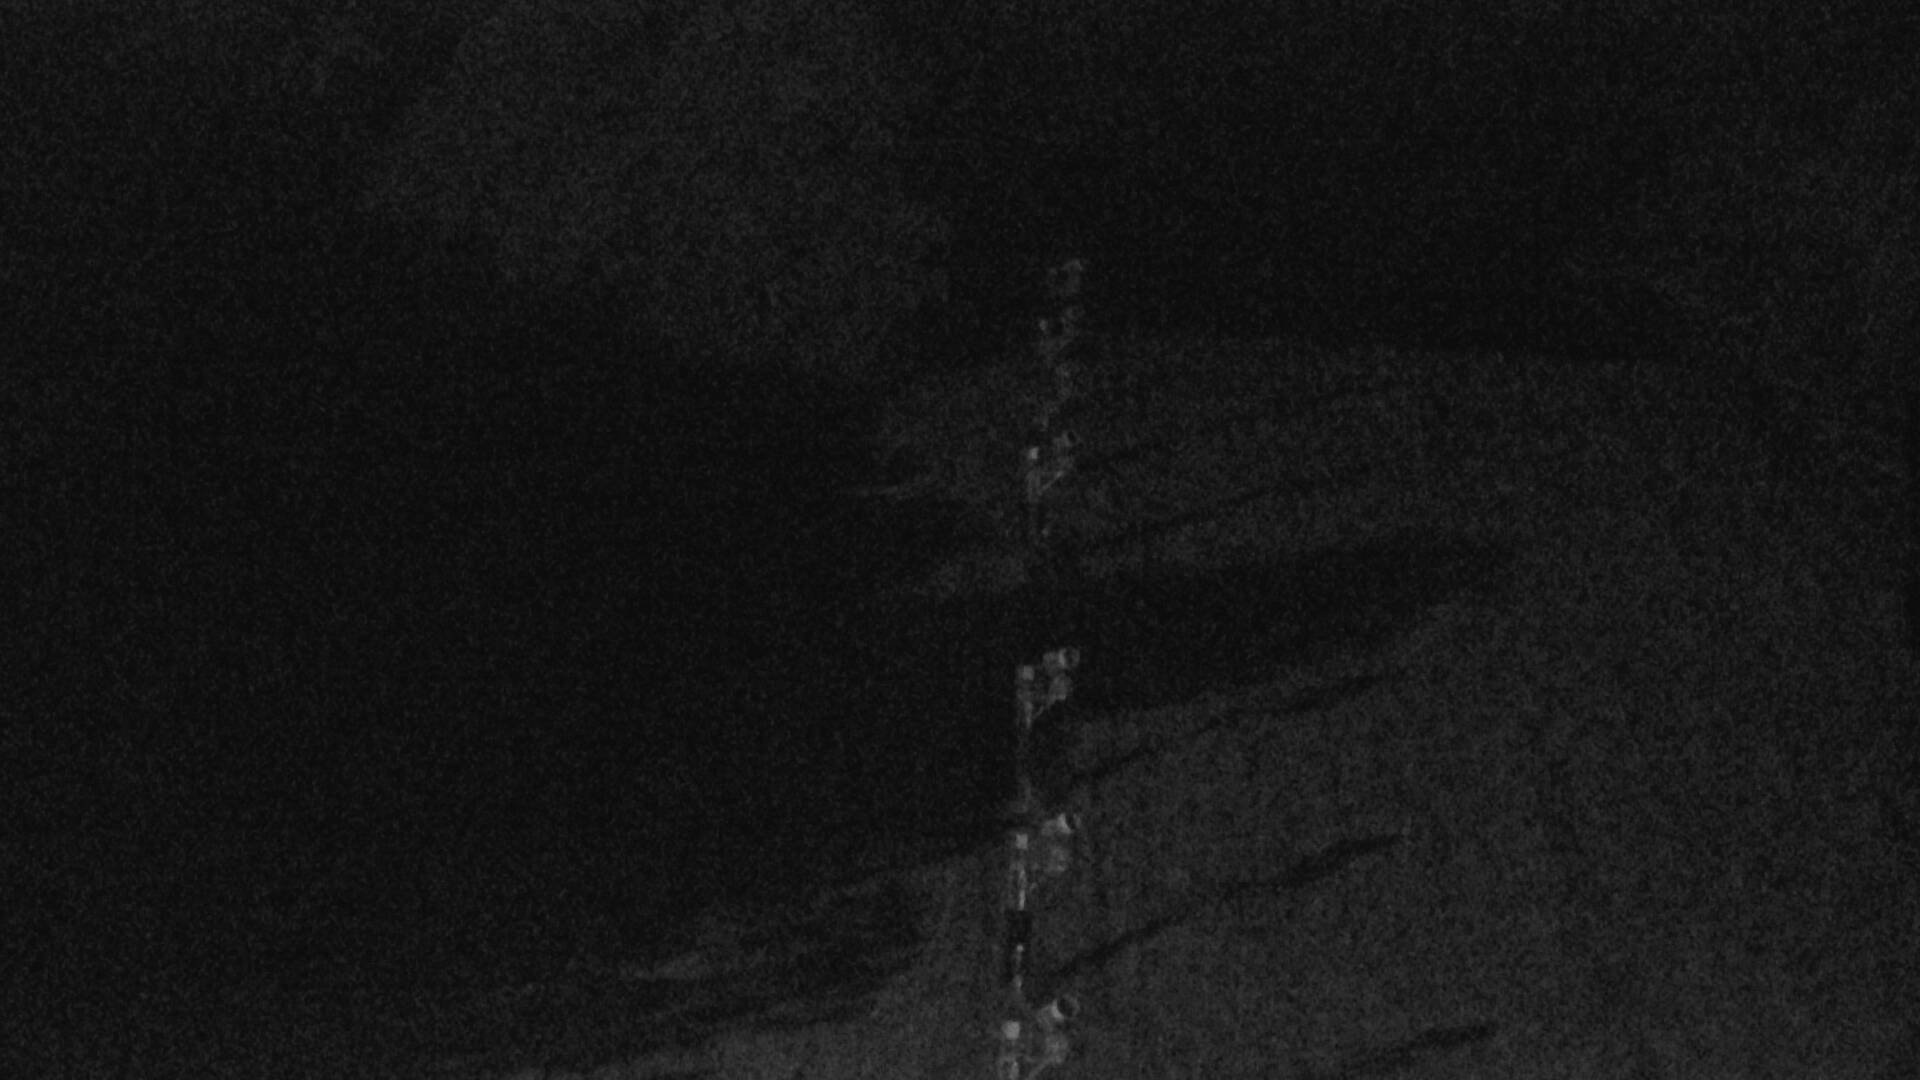 Live view of Rocket - Rocket Web Cam